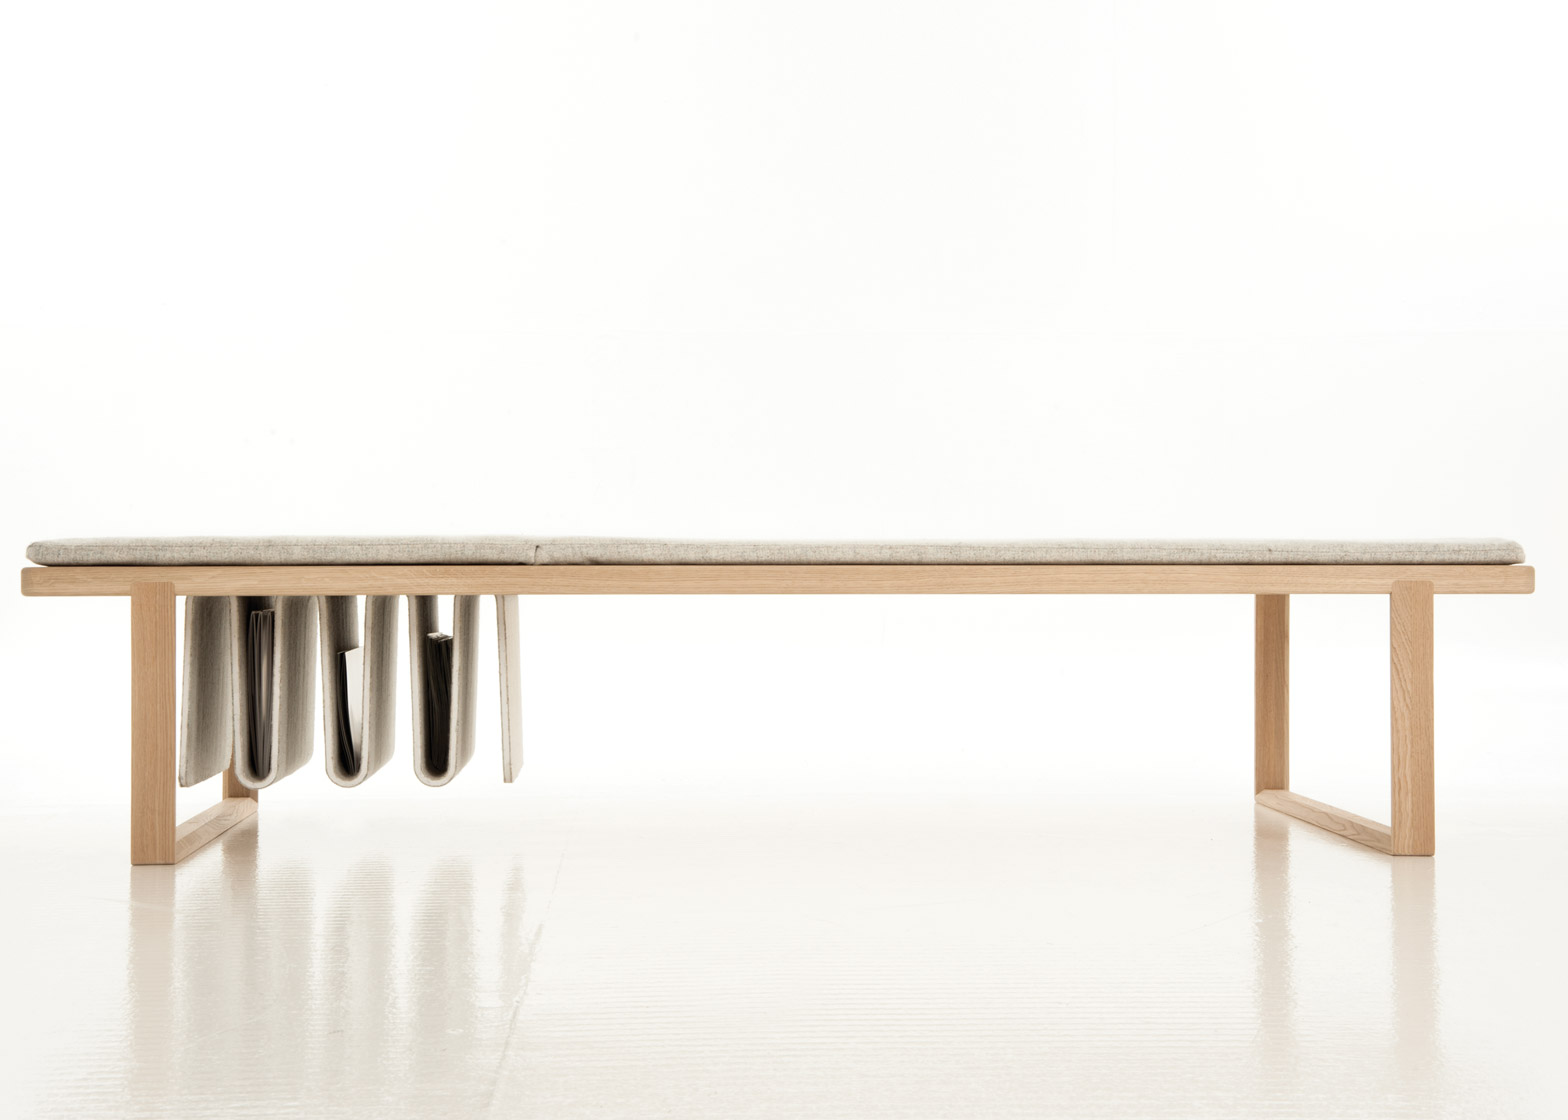 Pulse bench by Noidoi. Photograph by Tudor Cioroiu